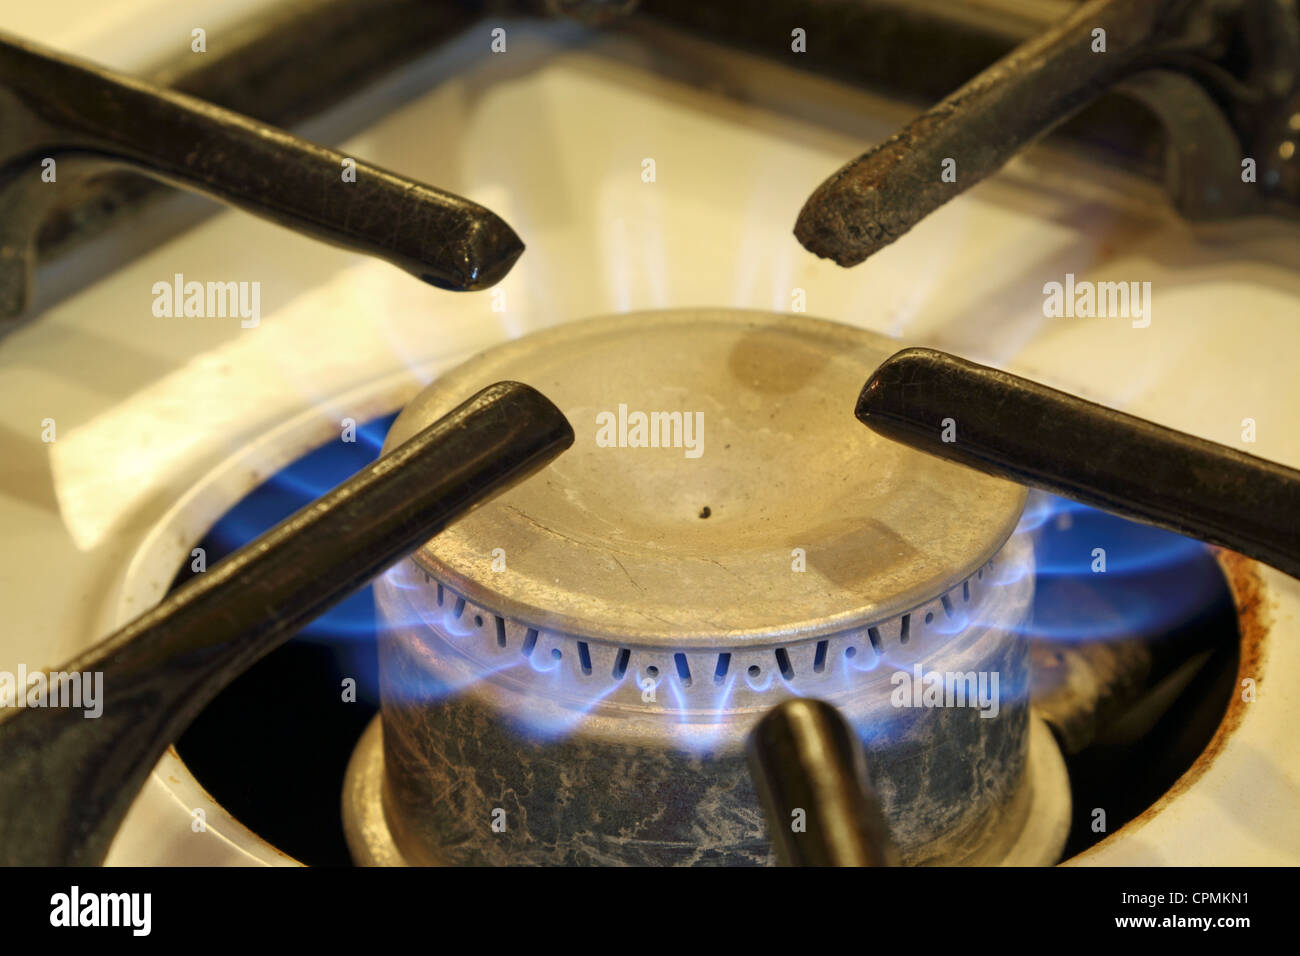 Gas jet burning on an old stove. Stock Photo